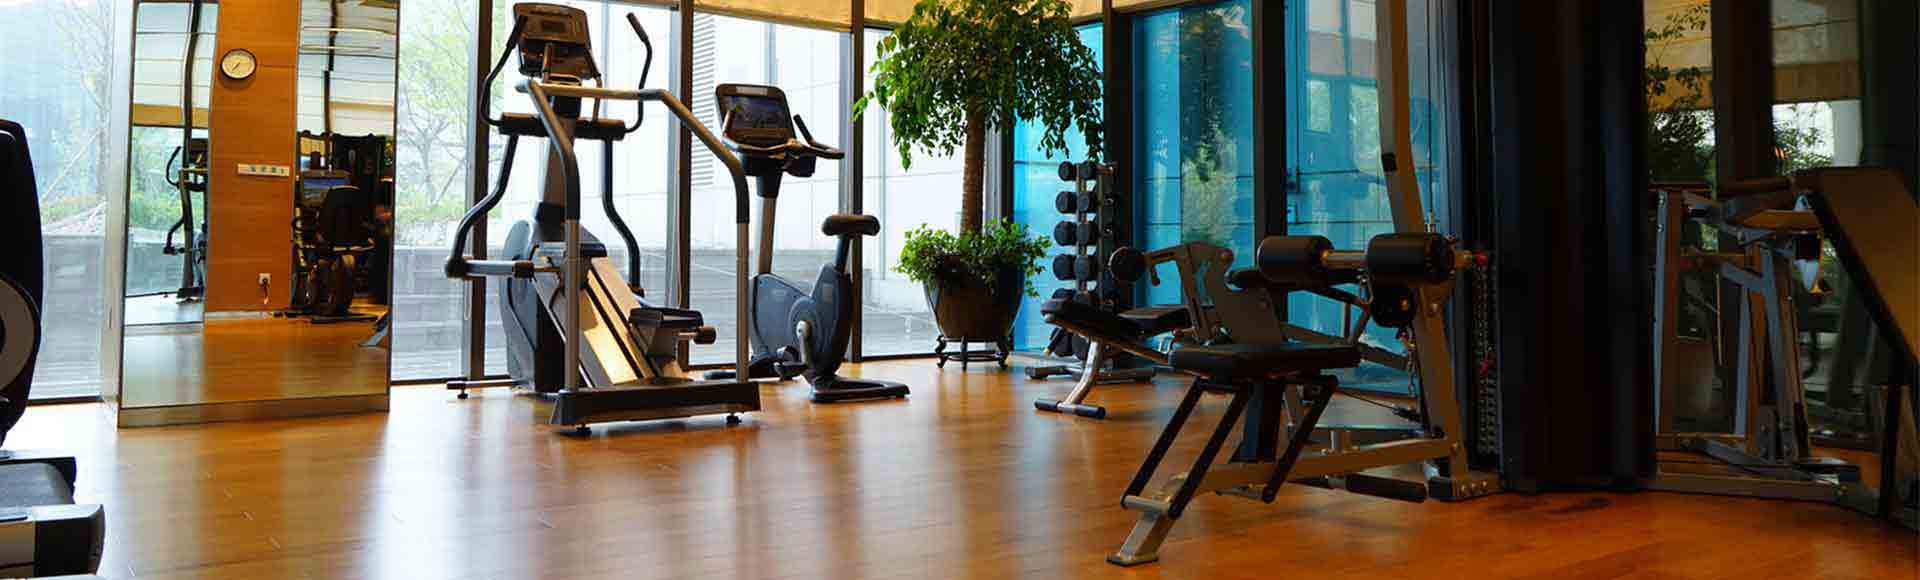 Aralco POS for Fitness and Health Clubs